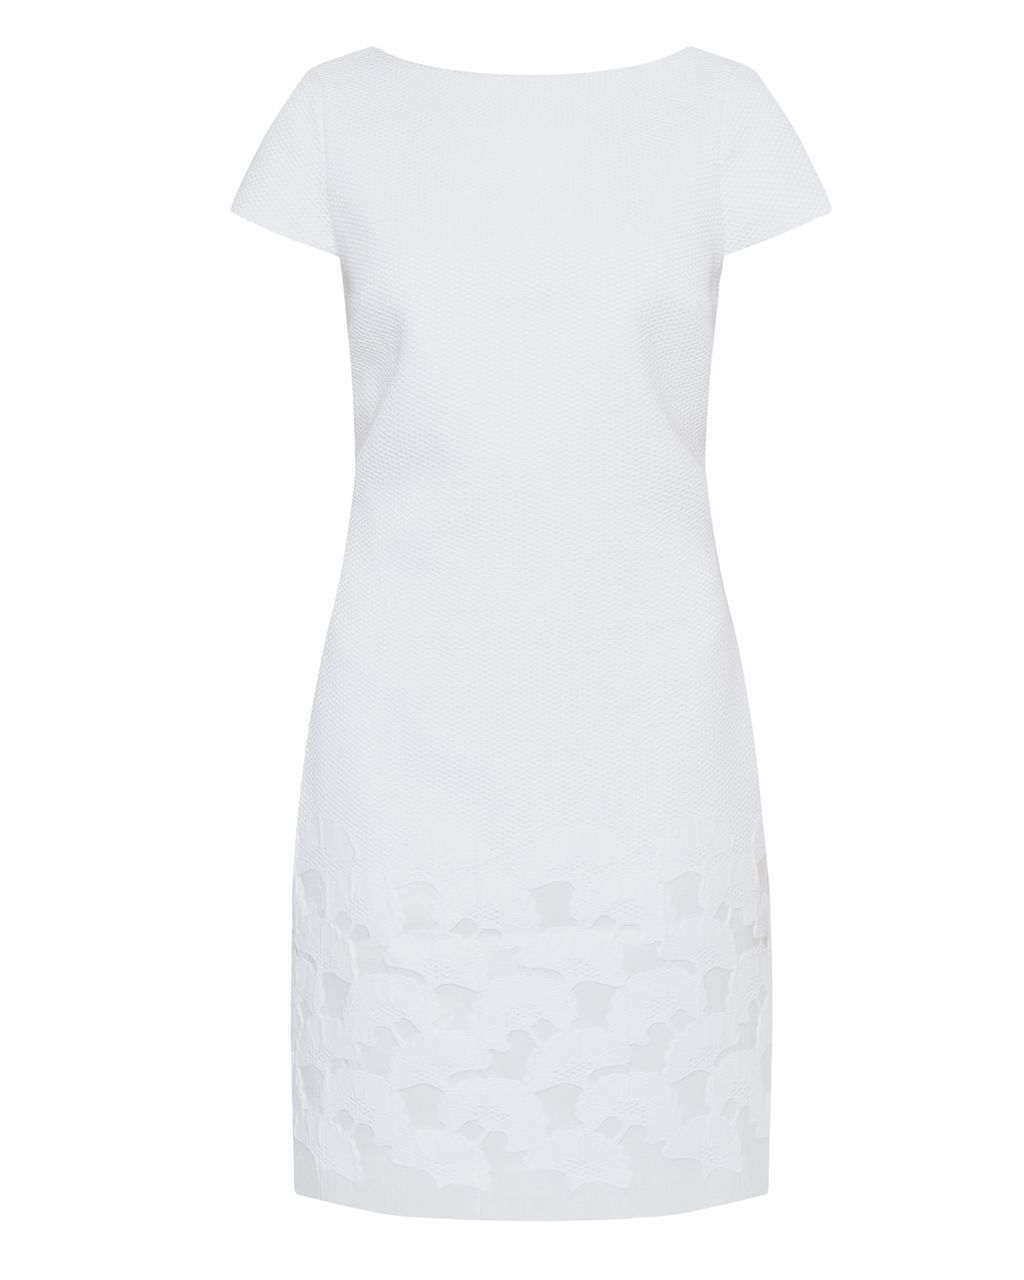 Juliene Jacquard Midi Dress, Winter White - style: shift; fit: tailored/fitted; pattern: plain; predominant colour: white; occasions: evening; length: just above the knee; fibres: cotton - mix; neckline: crew; sleeve length: short sleeve; sleeve style: standard; pattern type: fabric; texture group: brocade/jacquard; season: s/s 2016; wardrobe: event